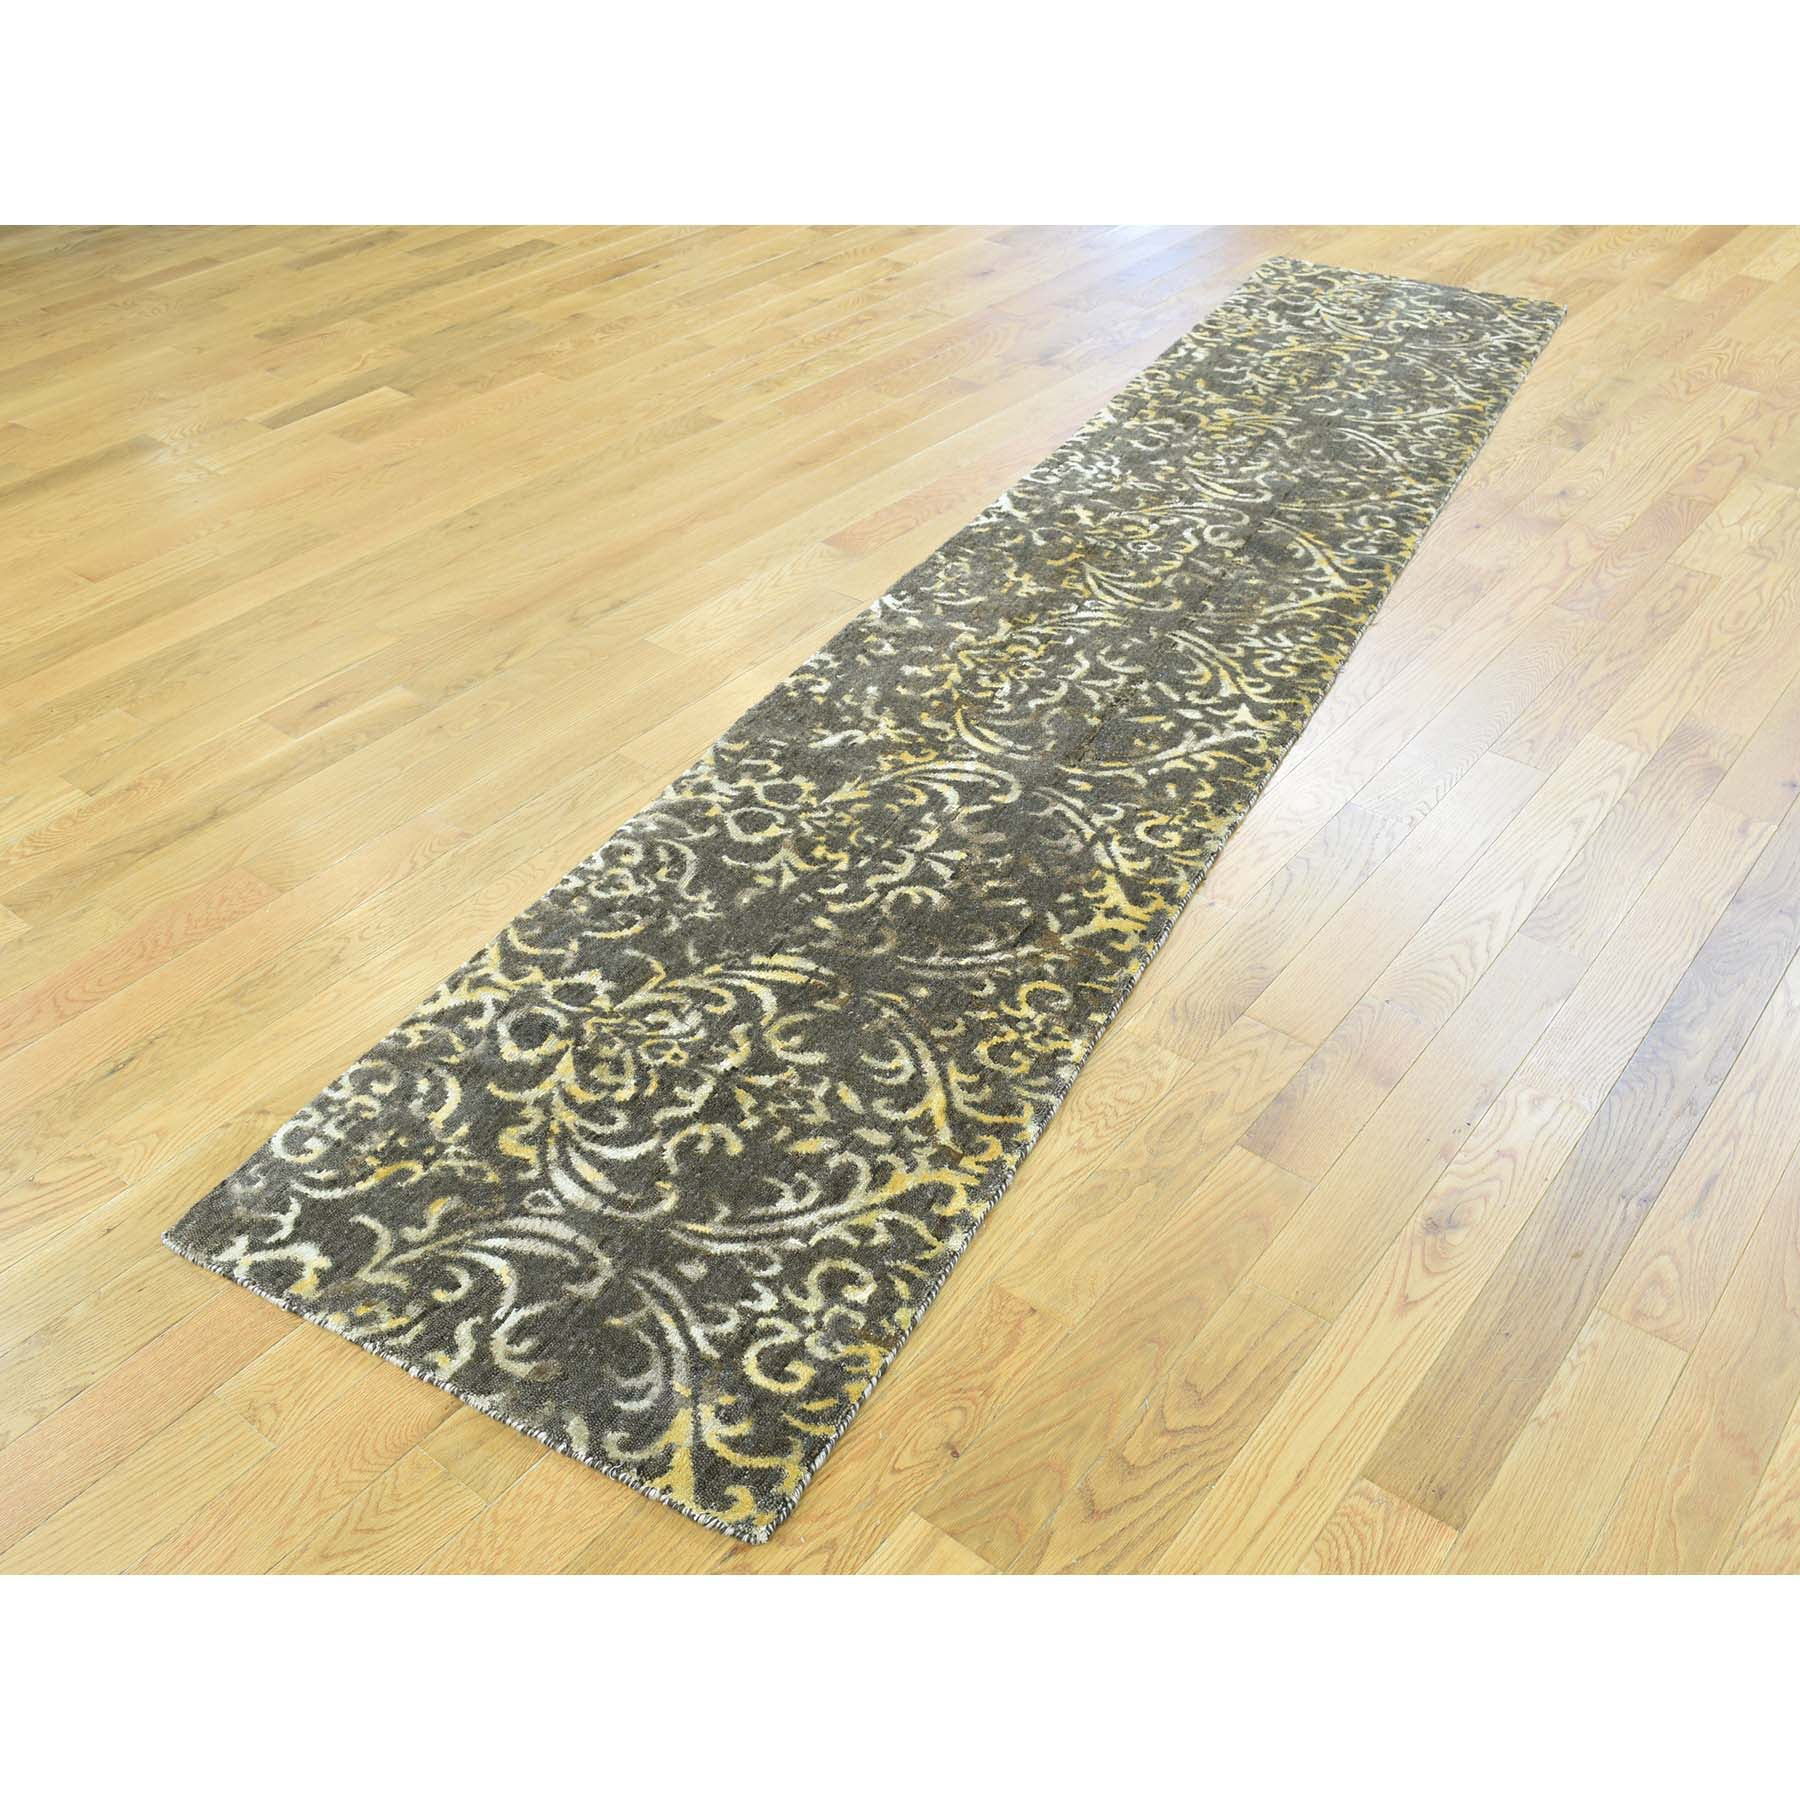 "Handmade Modern and Contemporary Runner Rug > Design# SH31704 > Size: 2'-0"" x 9'-10"" [ONLINE ONLY]"